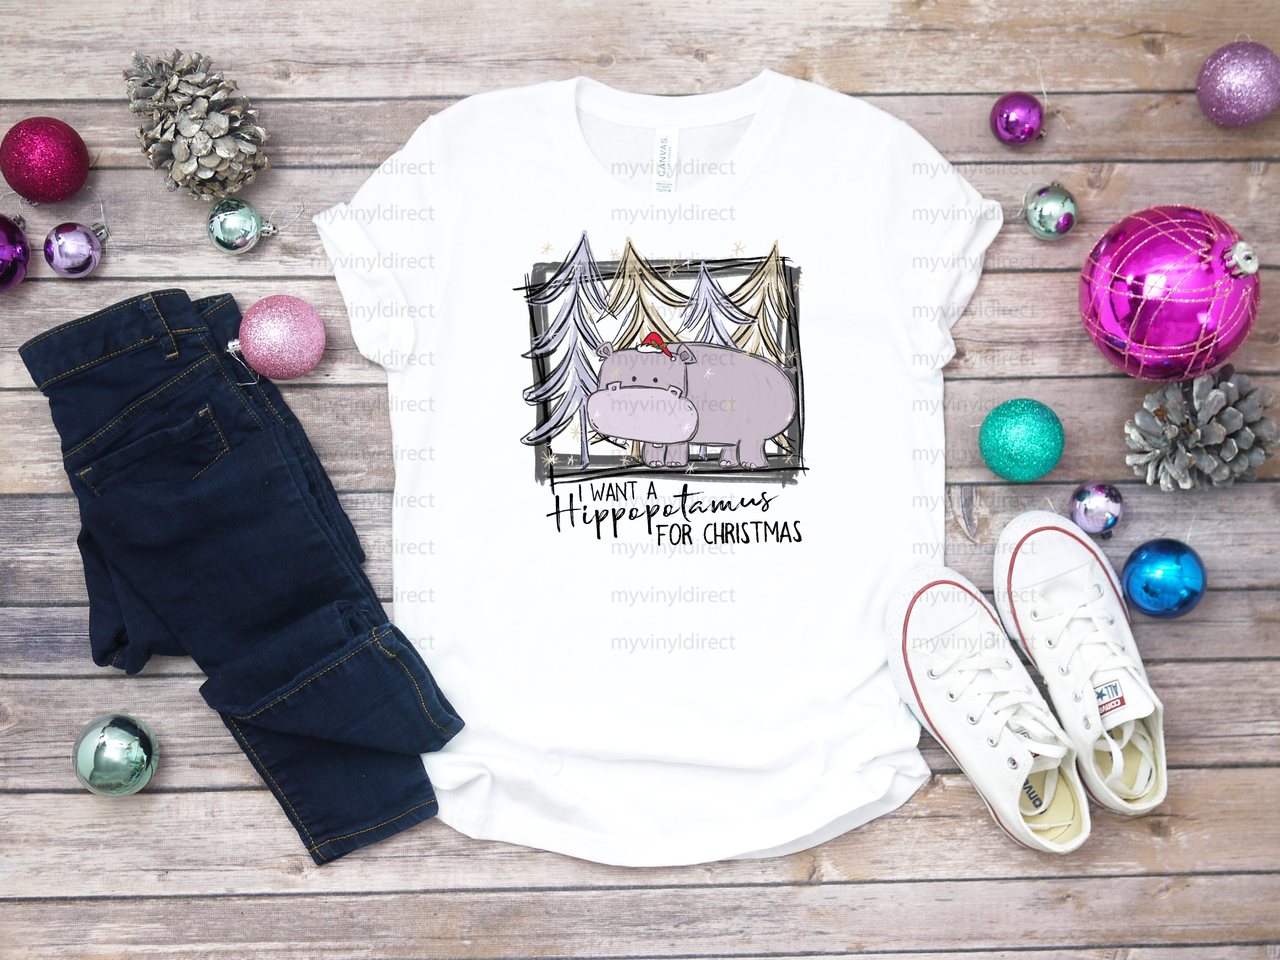 I Want A Hippopotamus for Christmas | Sublimation Transfer - My ...